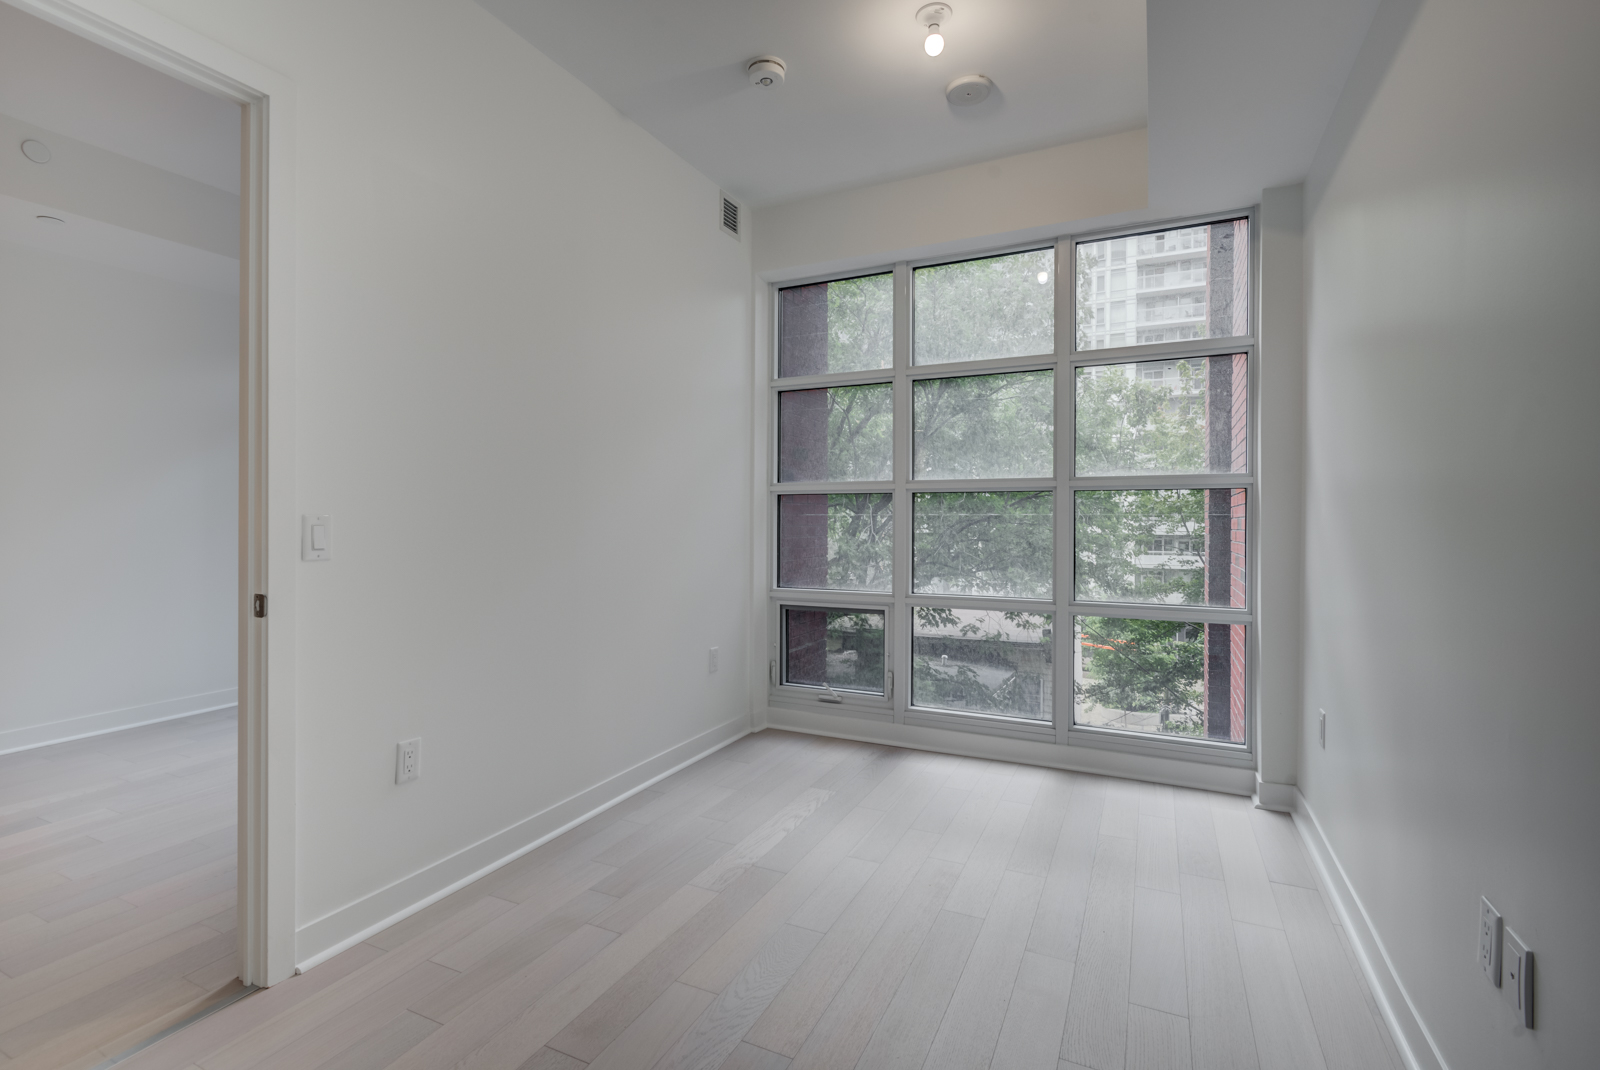 Empty master bedroom with floor-to-ceiling windows.